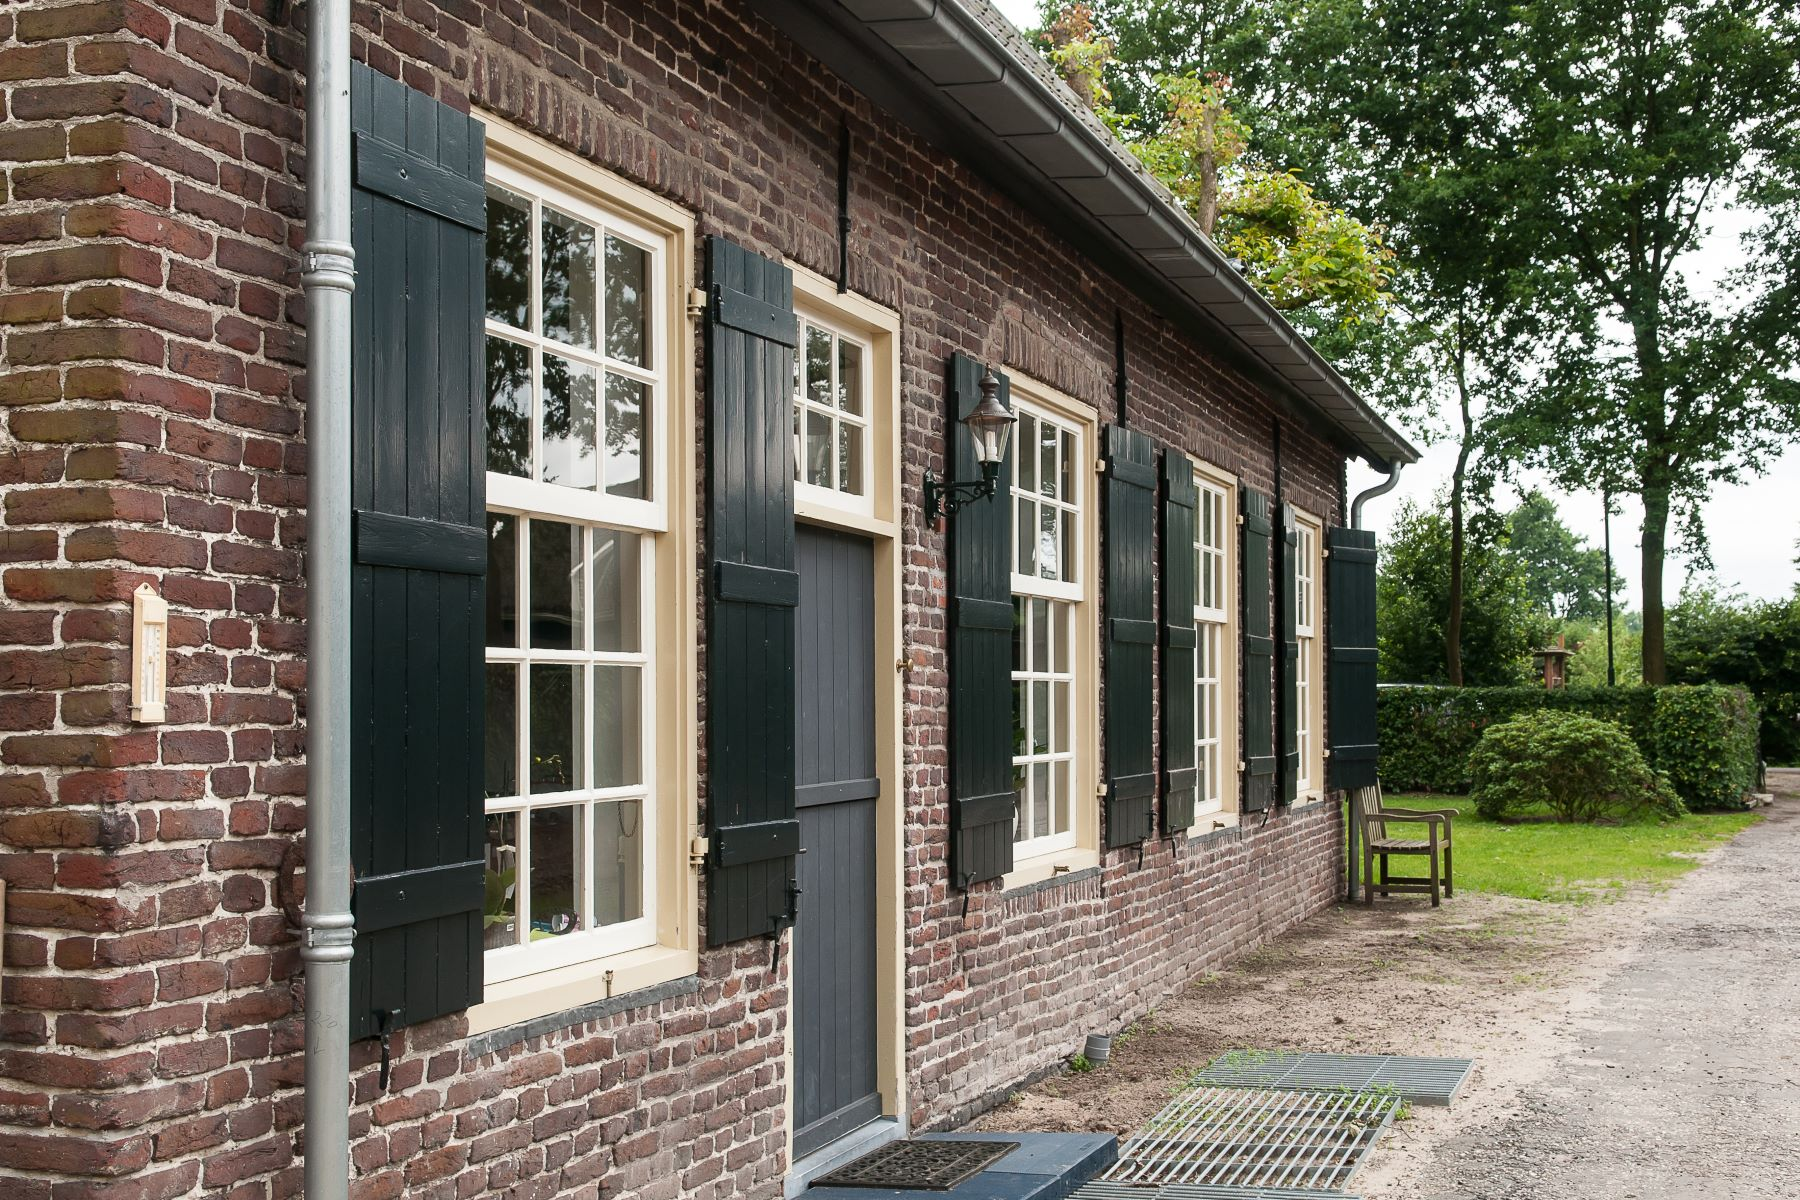 """Single Family Homes for Sale at Country home """"Het Oude Mannengasthuis"""" Haarenseweg 20 Esch, North Brabant 5296 KB Netherlands"""